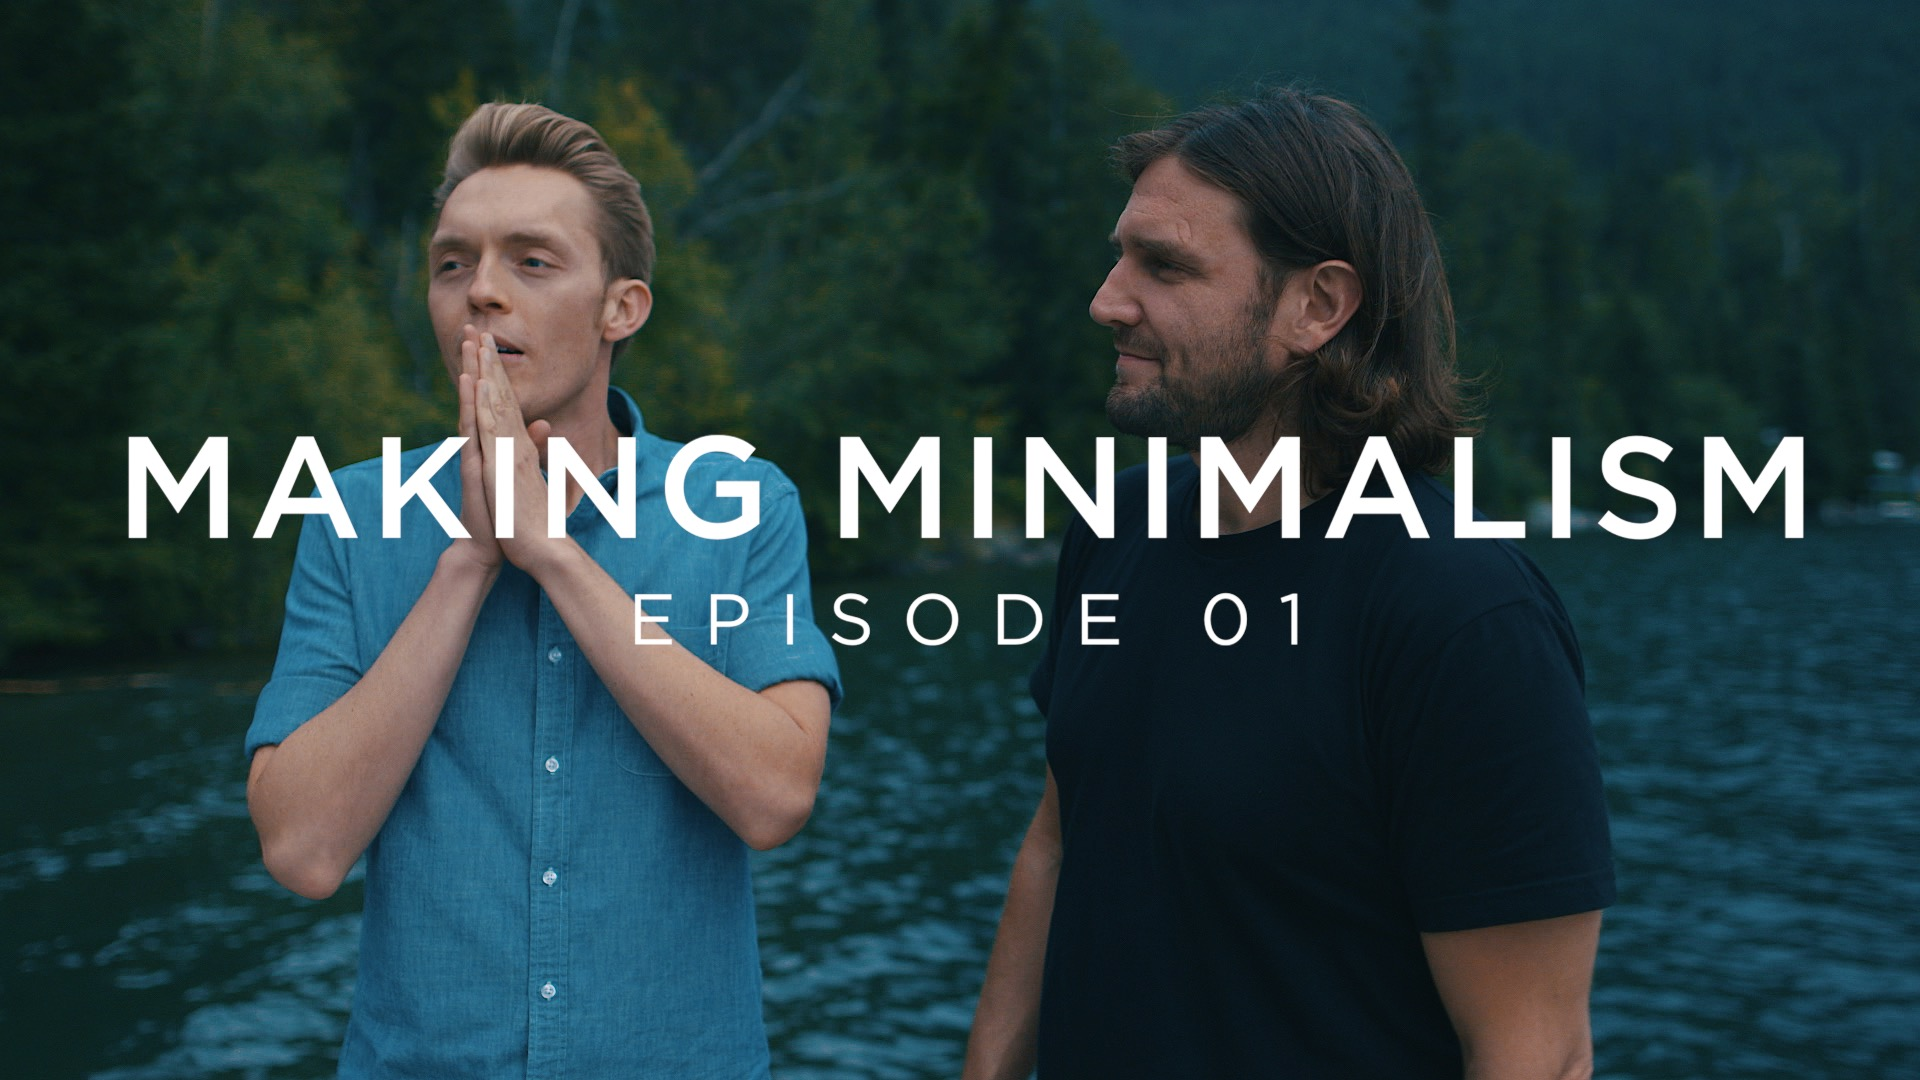 Making Minimalism Episode 01